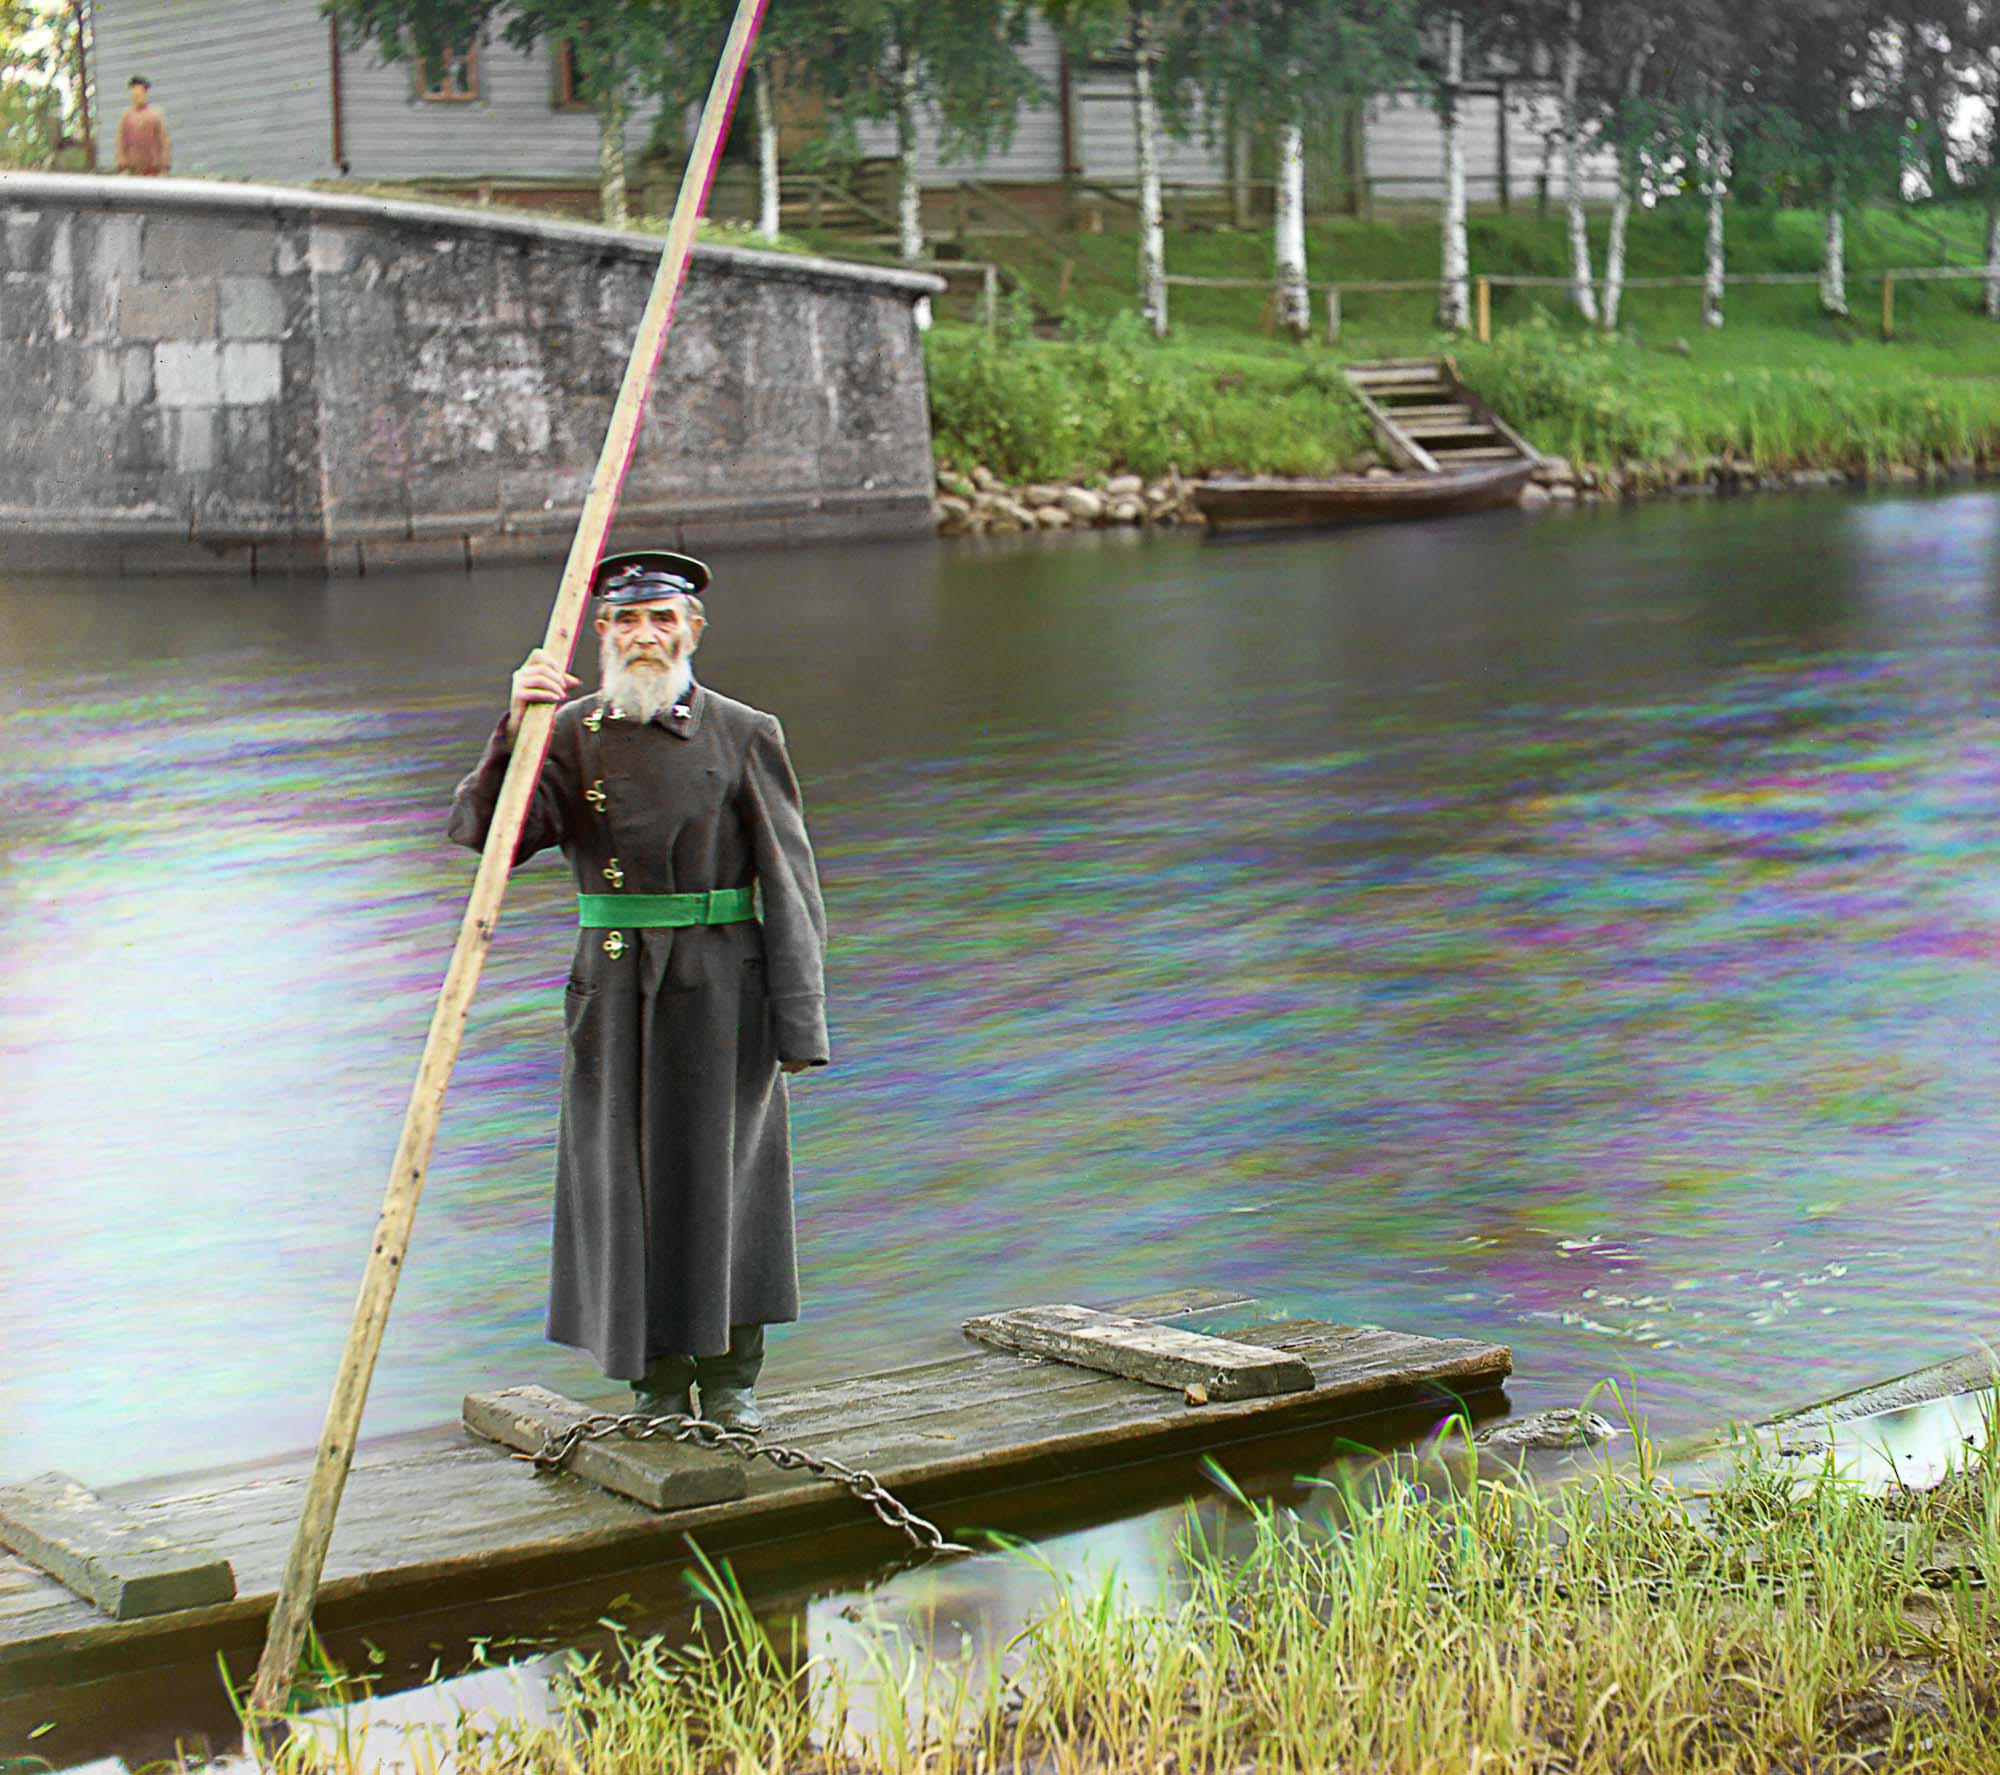 Mariinsky Canal System. Gatekeeper P. Karlinsky, 84 years old, 66 years in the service (1909)